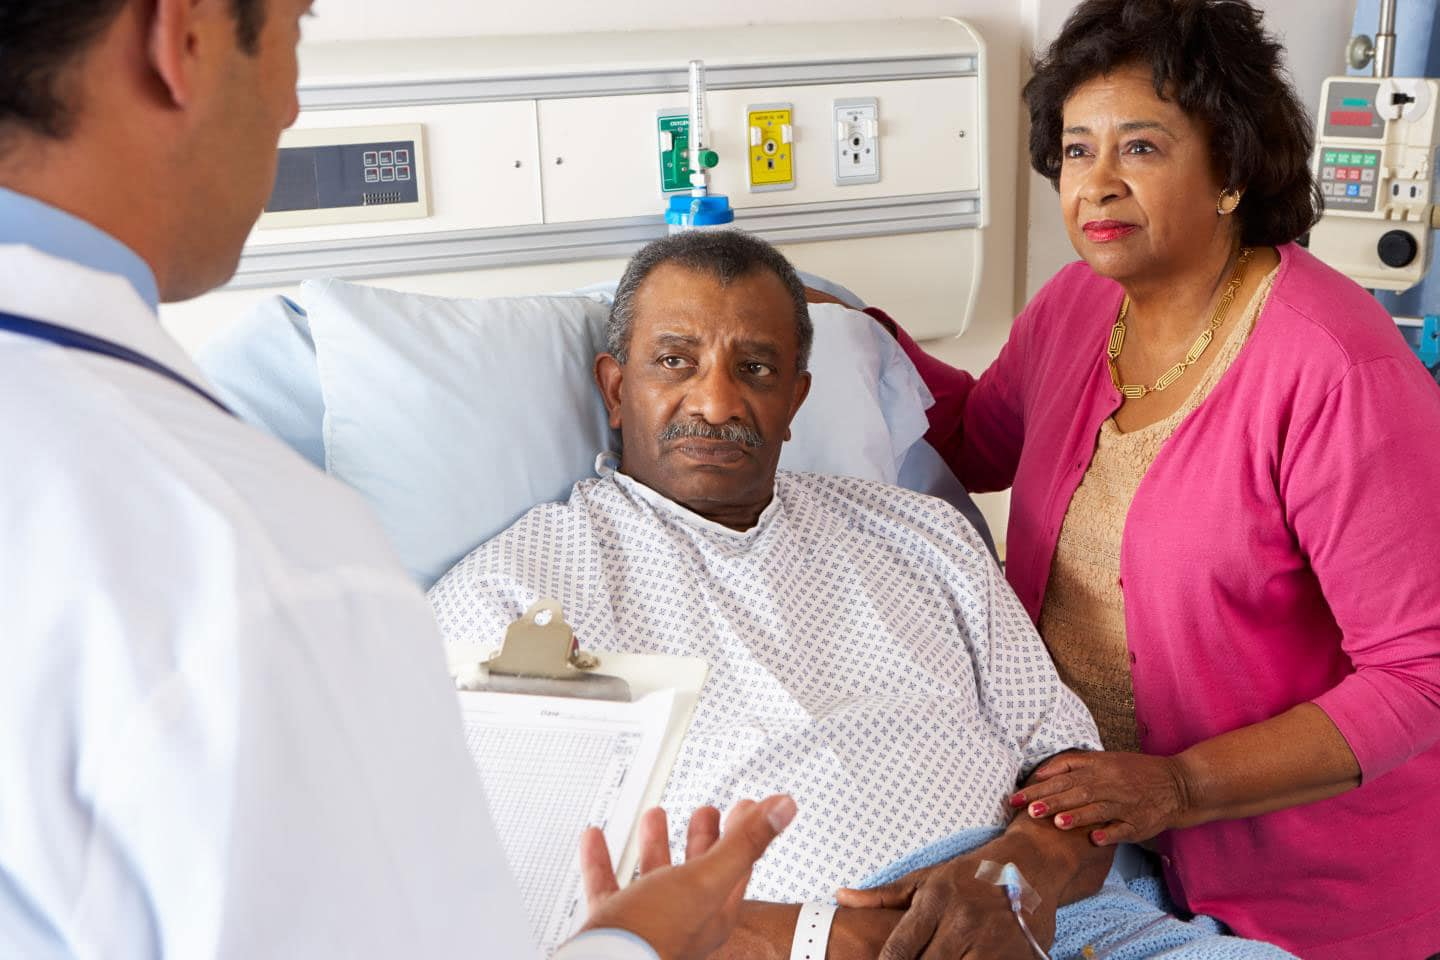 Black individuals more likely to test positive for COVID-19